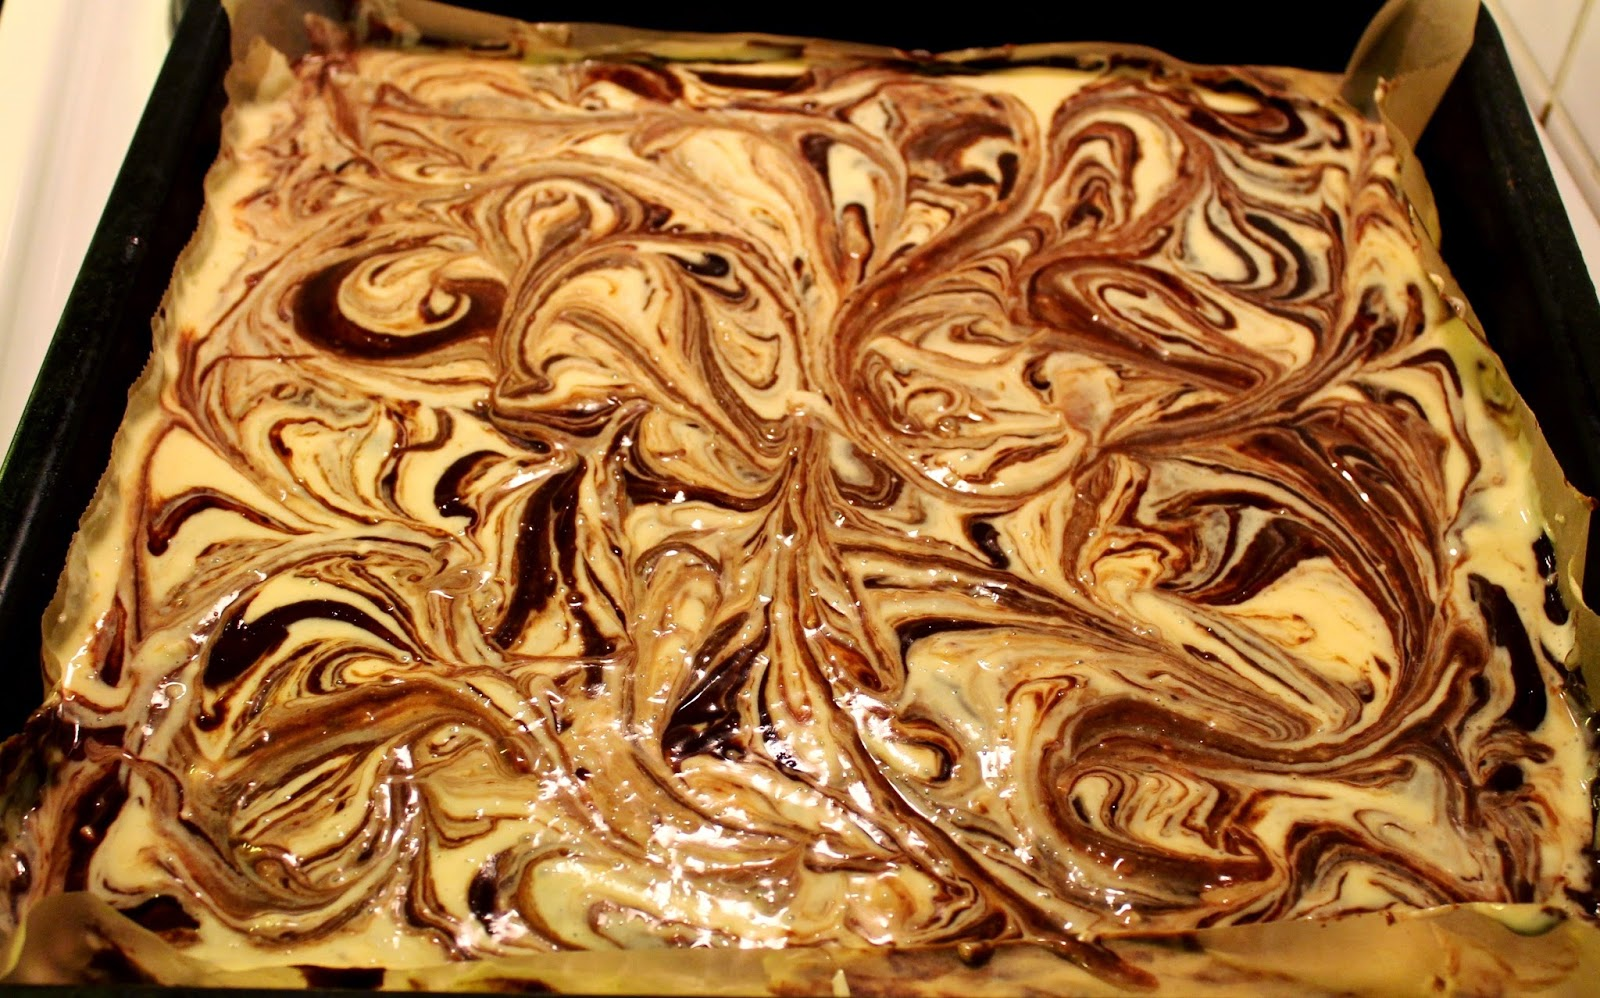 marbled brownies before baking by chef student to cocktail party